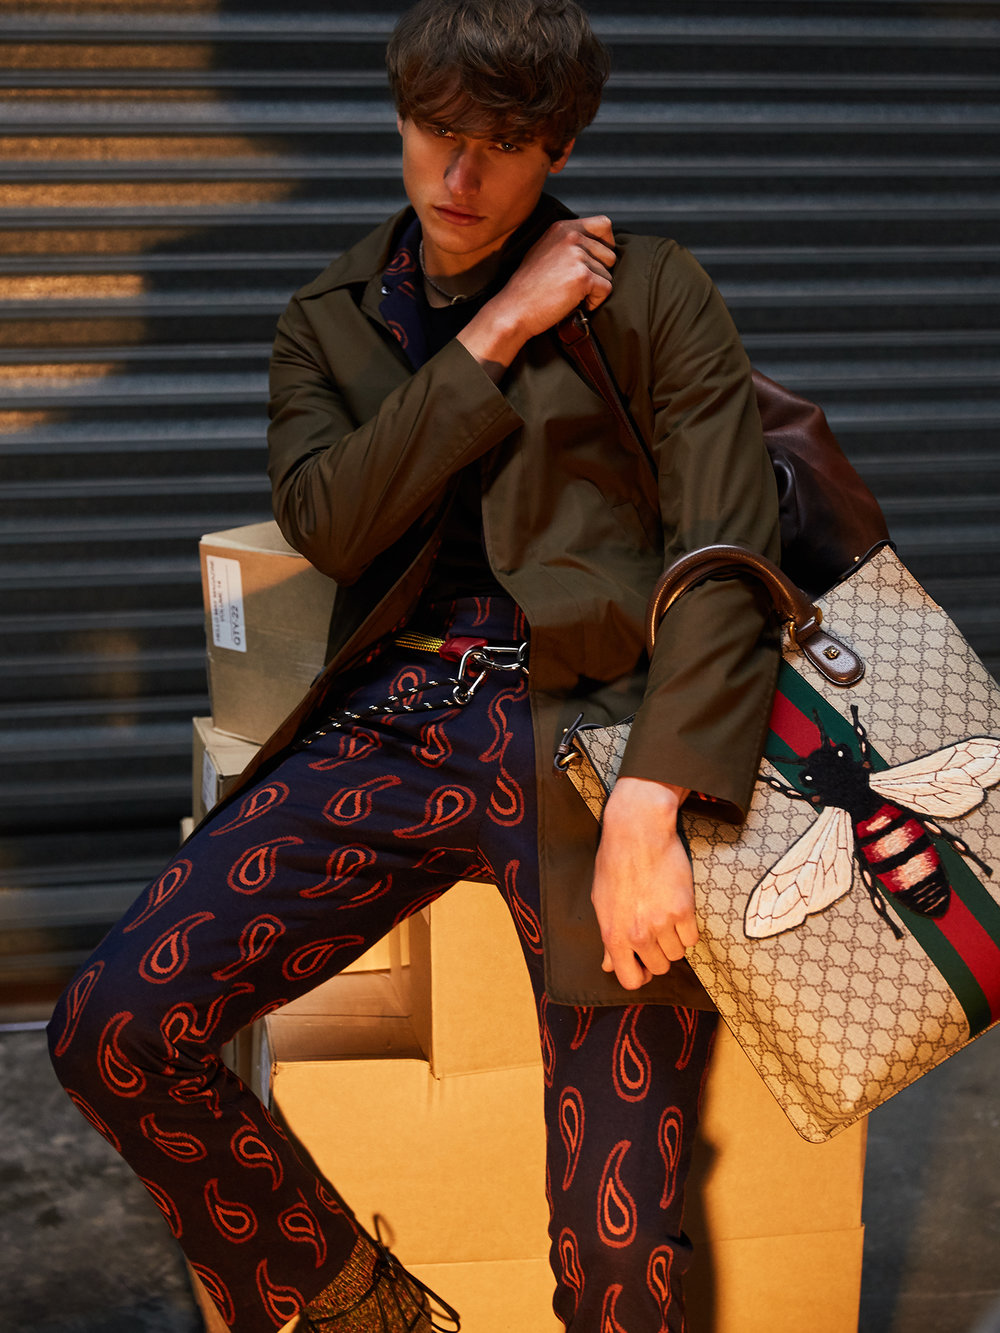 Coat – PS by Paul Smith, Jacket and pants – Paul Smith, T-Shirt – Kit & Ace, Backpack – Hunt Leather, Bag – Gucci, Necklace – stylist's own, Rope belt – stylist's own, Sandals – Gucci, Socks – stylist's own.